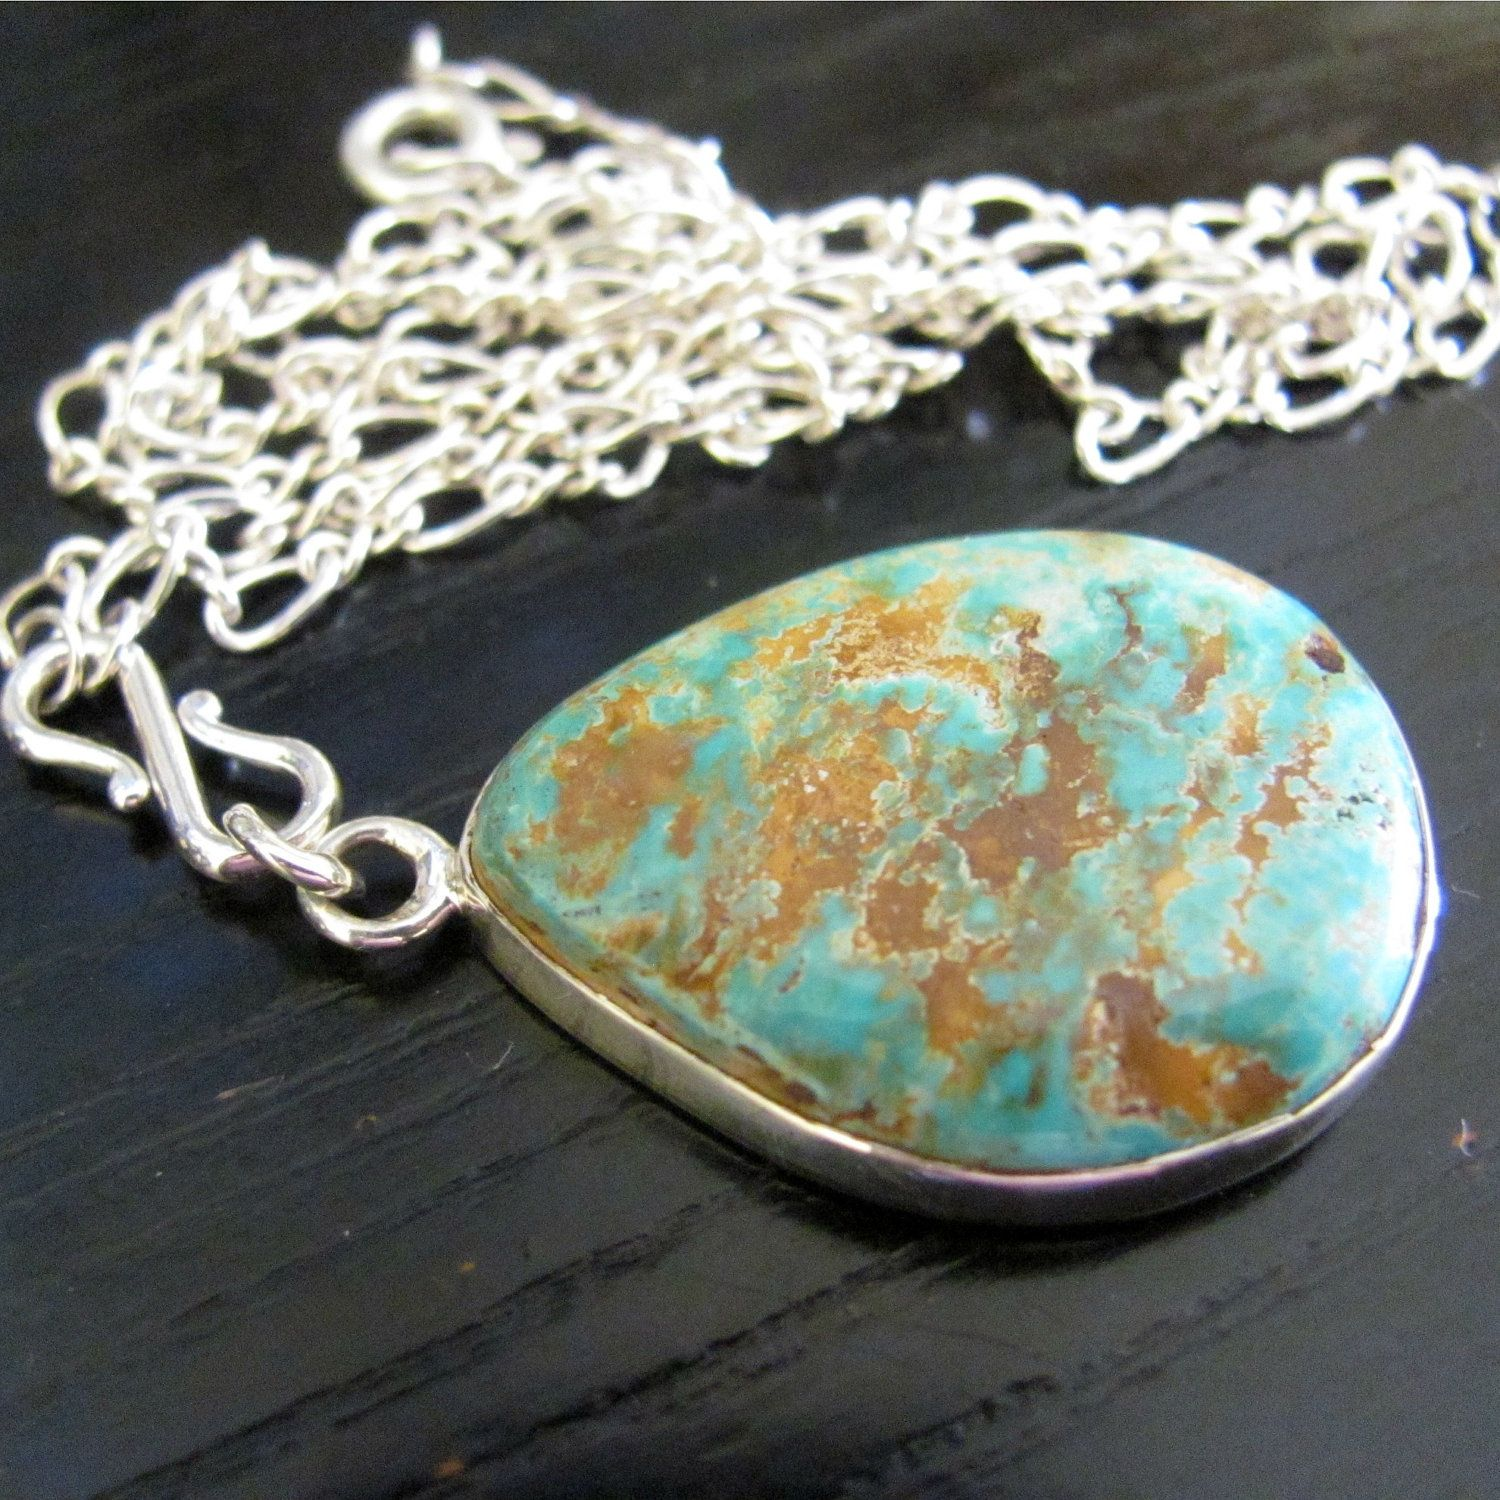 Cripple Creek Turquoise Cripple Creek turquoise mine is located in